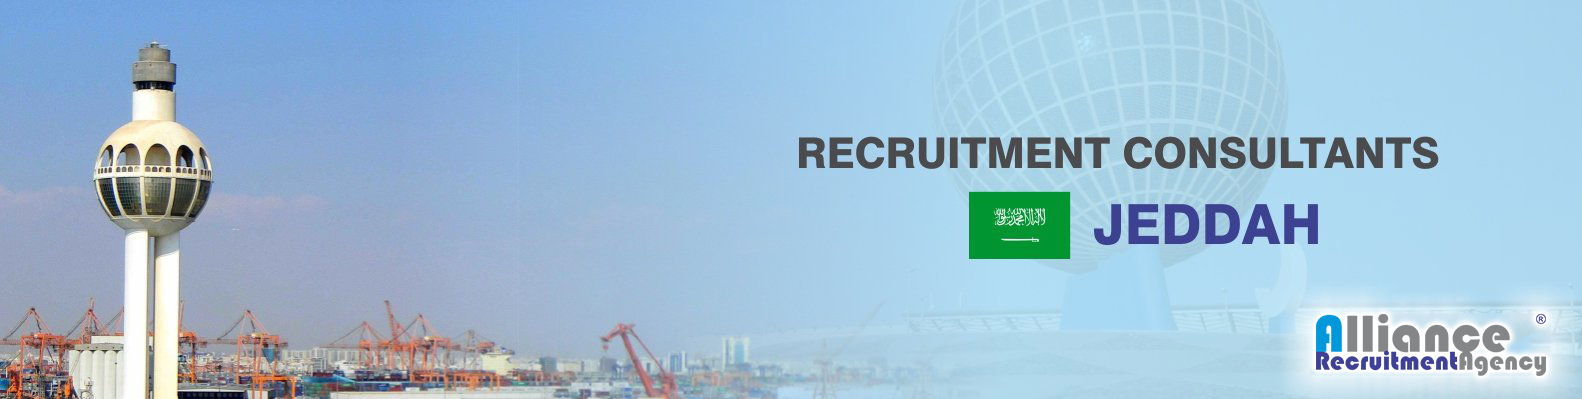 recruitment agency jeddah